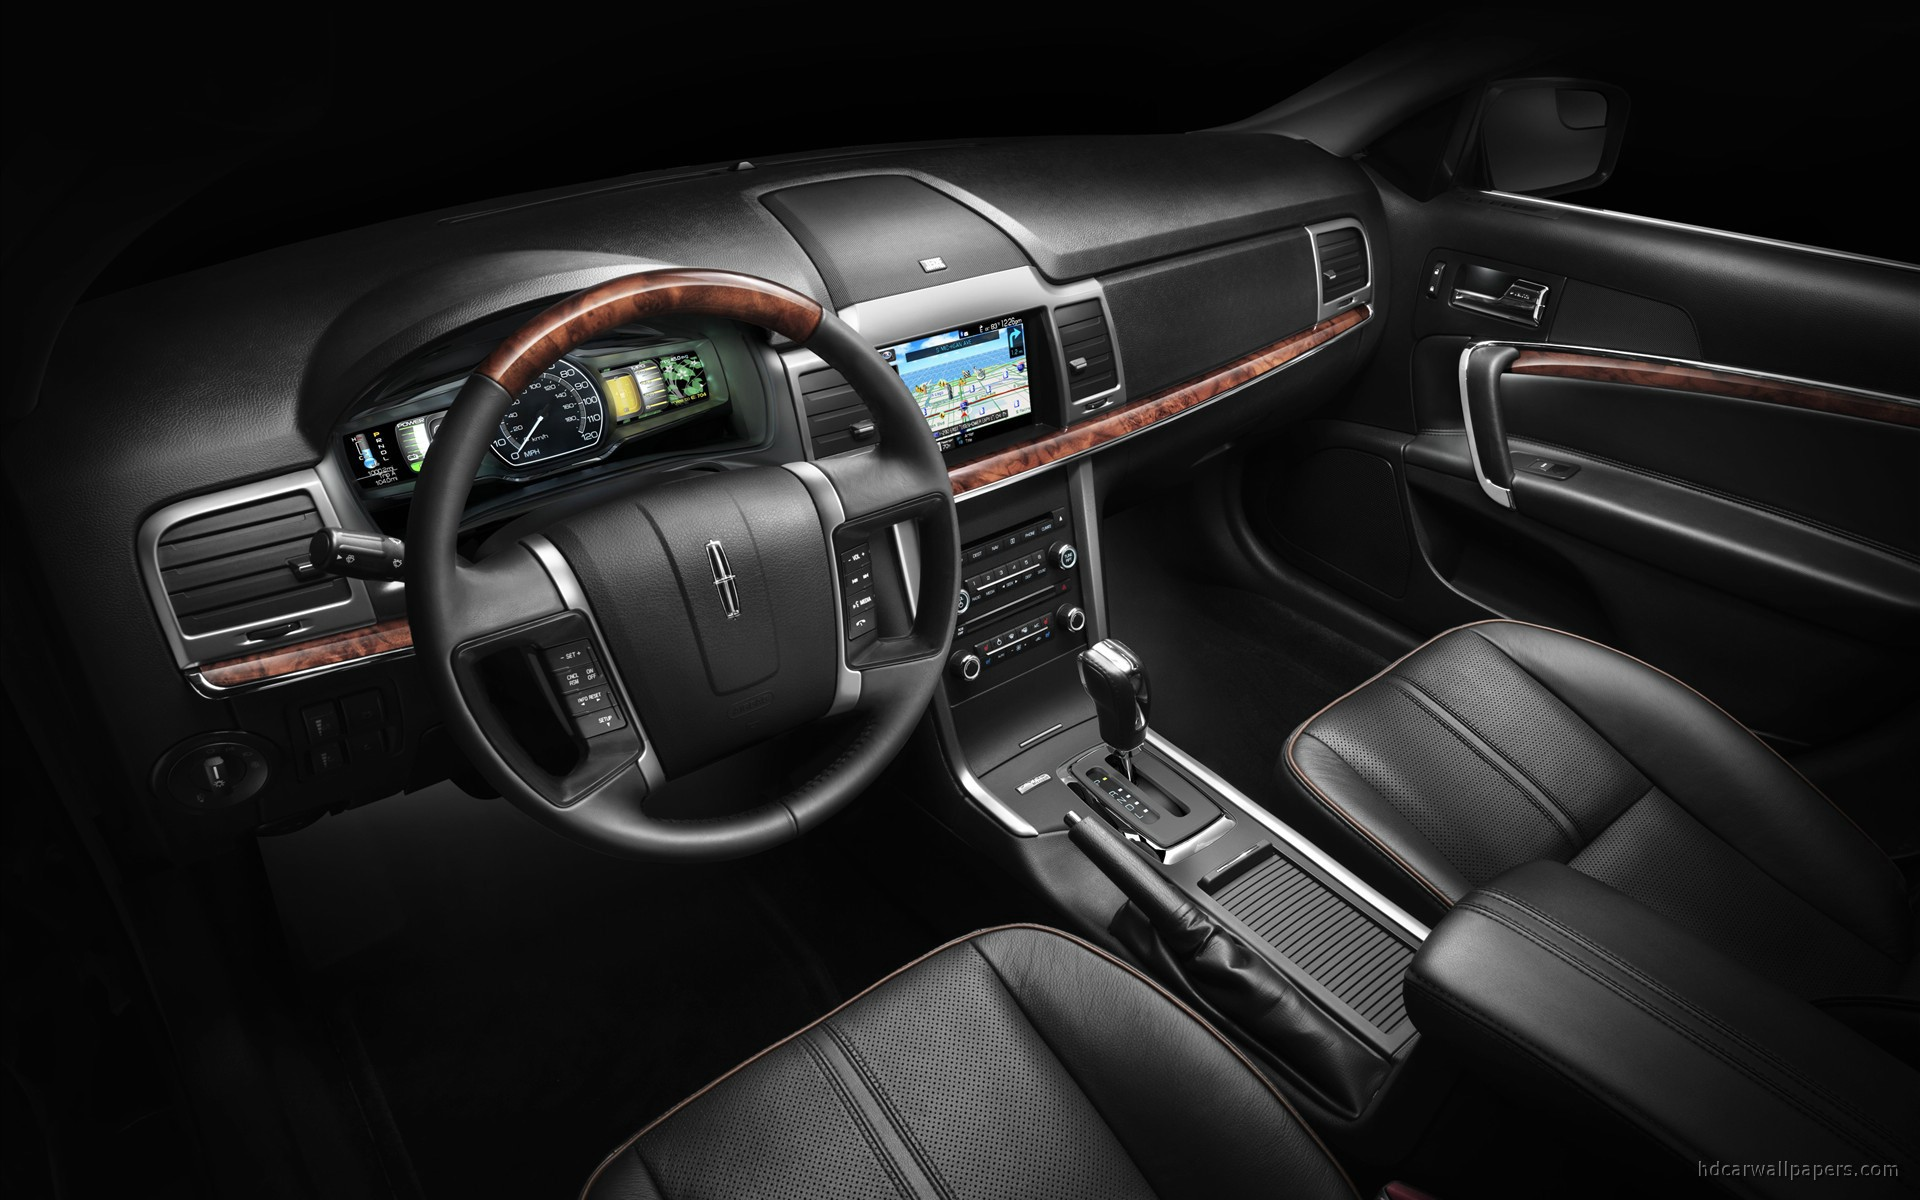 Tags: 2011 Interior Hybrid Lincoln